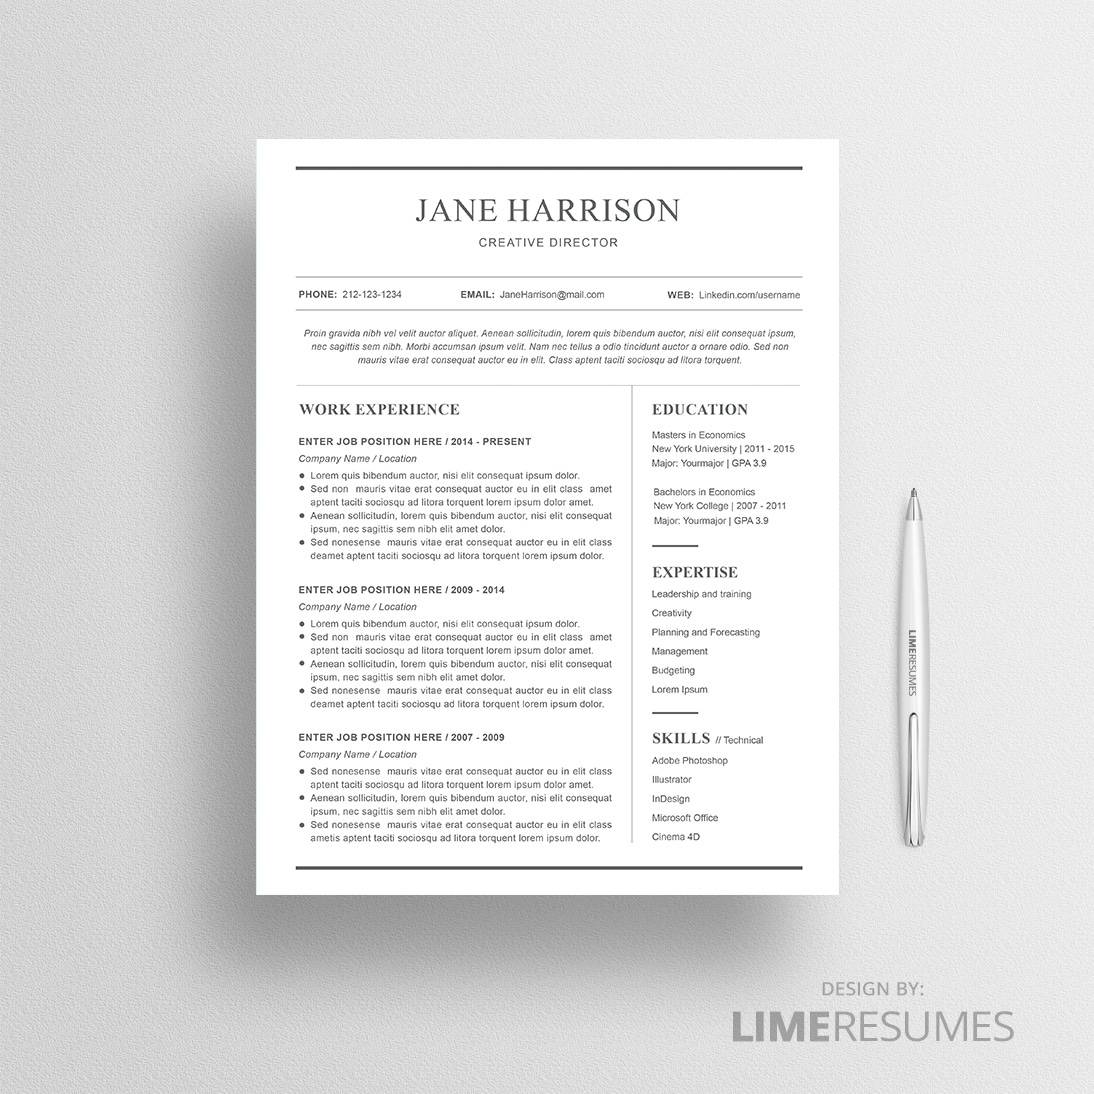 Minimalist resume template minimalist resume design for Reusme template